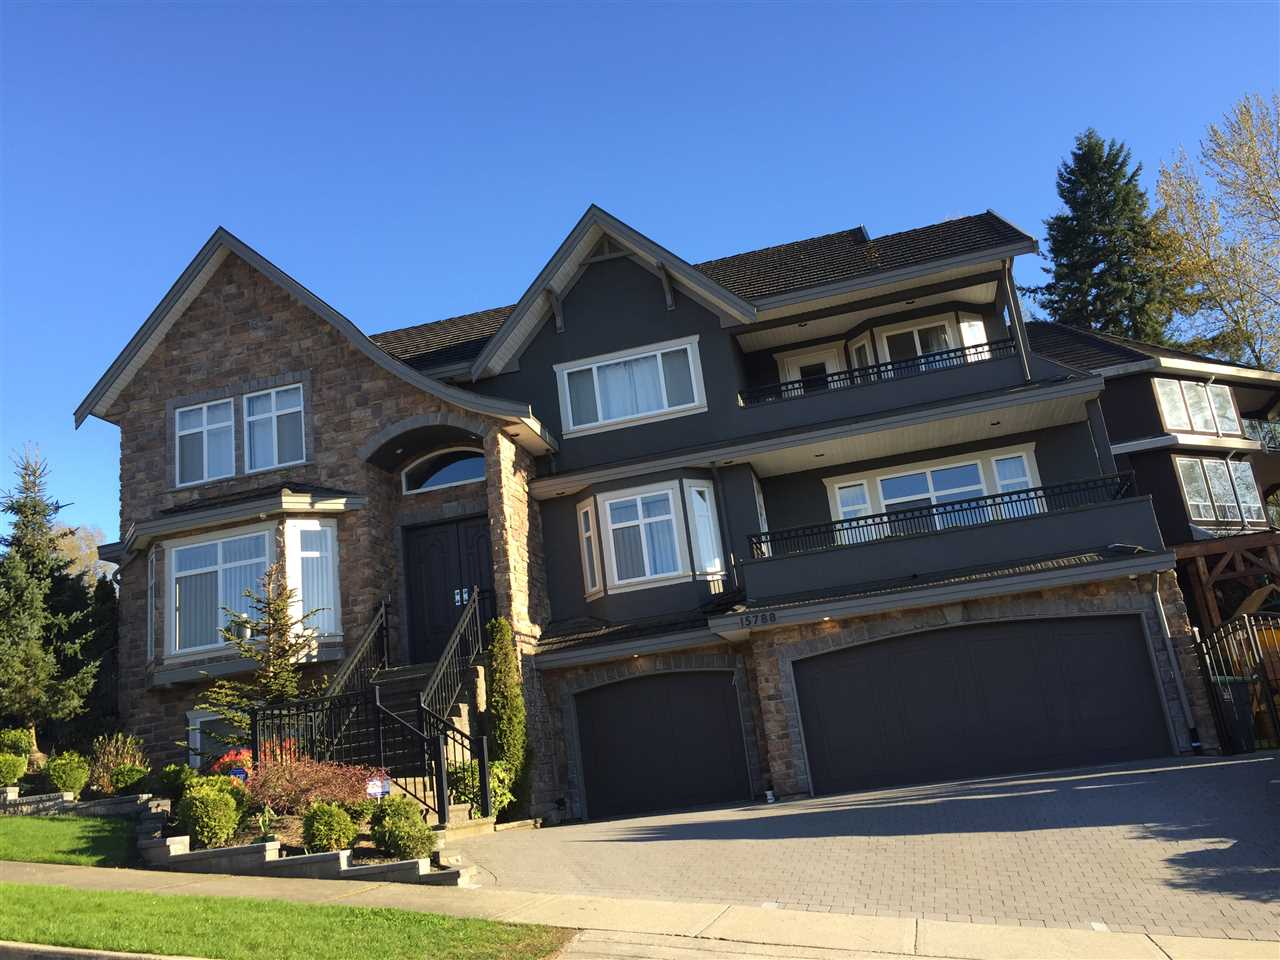 Photo 18: Photos: 15788 114 Avenue in Surrey: Fraser Heights House for sale (North Surrey)  : MLS® # R2207651